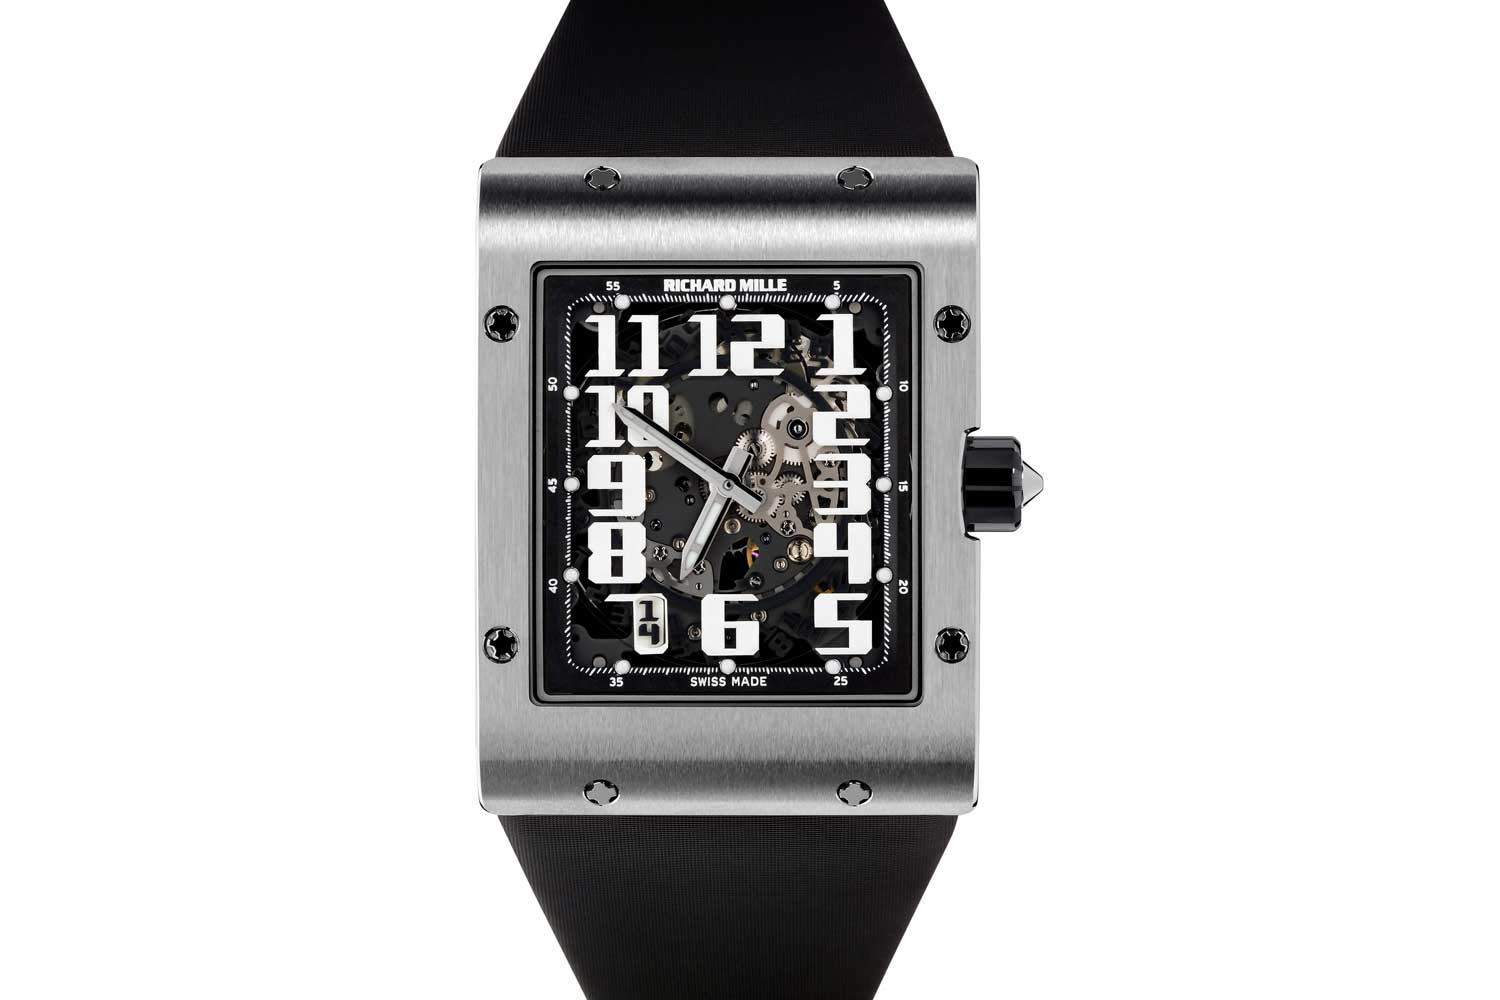 The Richard Mille RM 016 is a watch with a 38mm wide and 49.8mm long curved rectangular case that is a scant 8.25mm thick